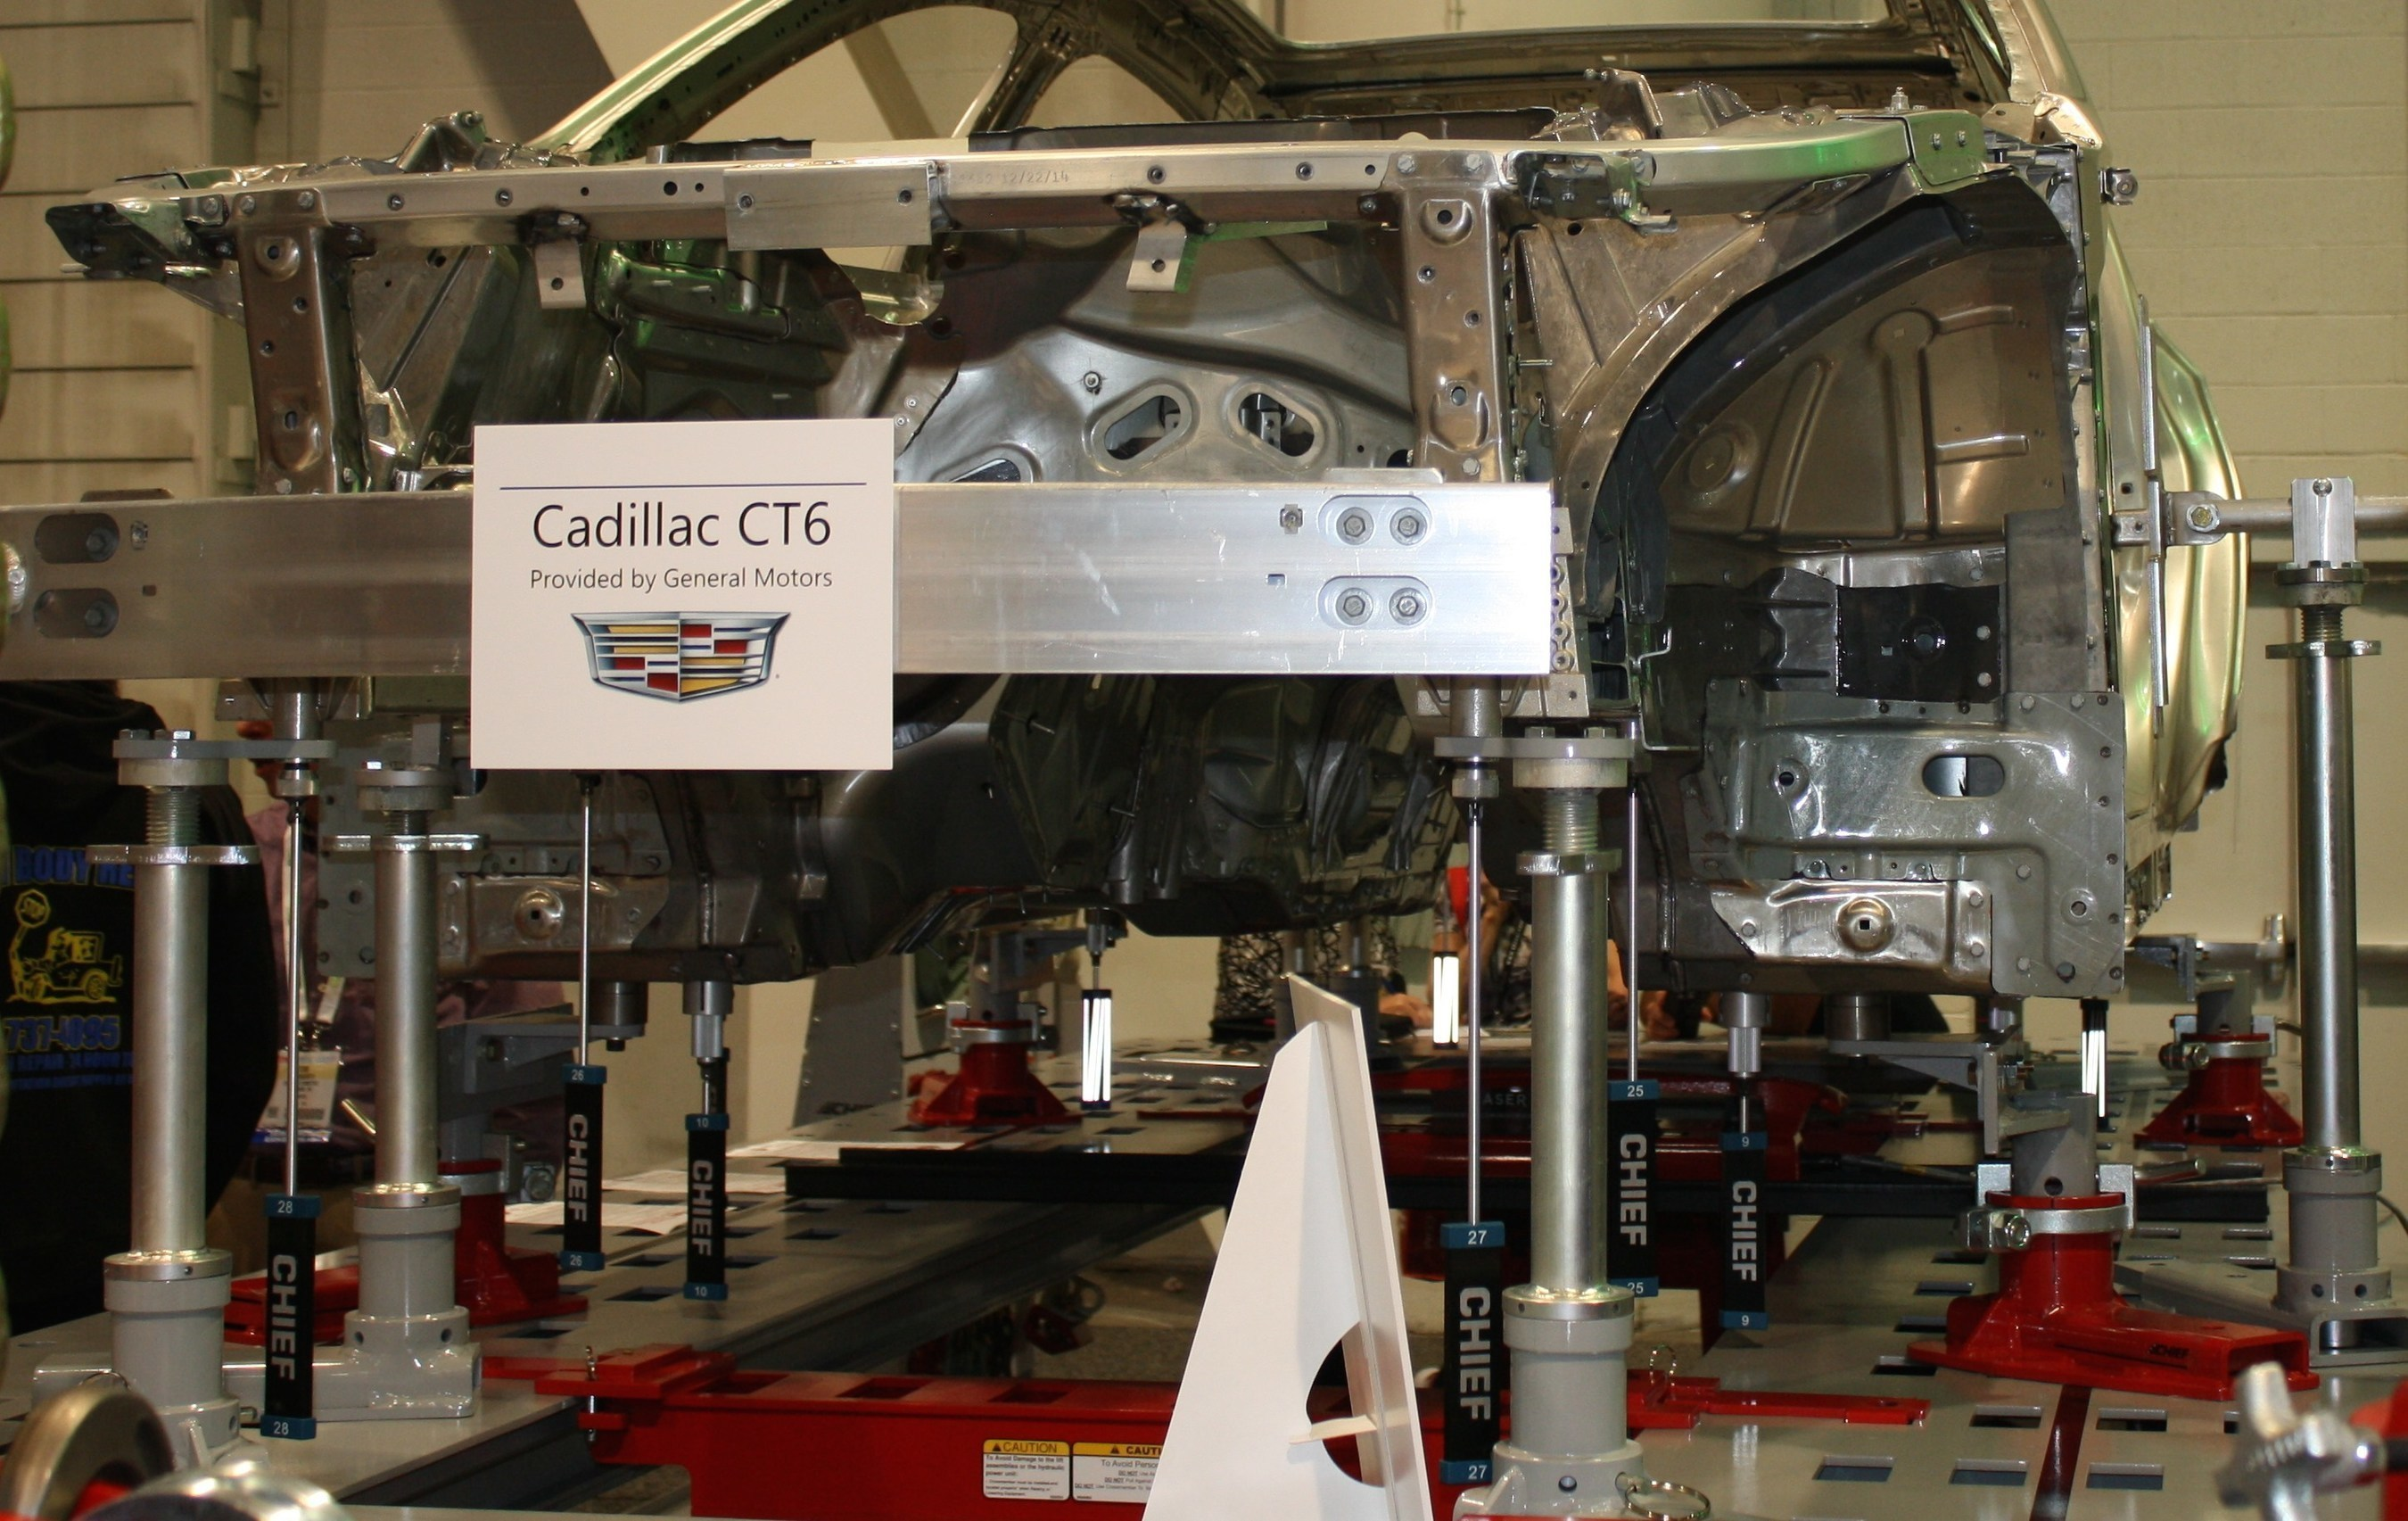 GM Approves New Chief Holding System for Repairing 2016 Cadillac CT6